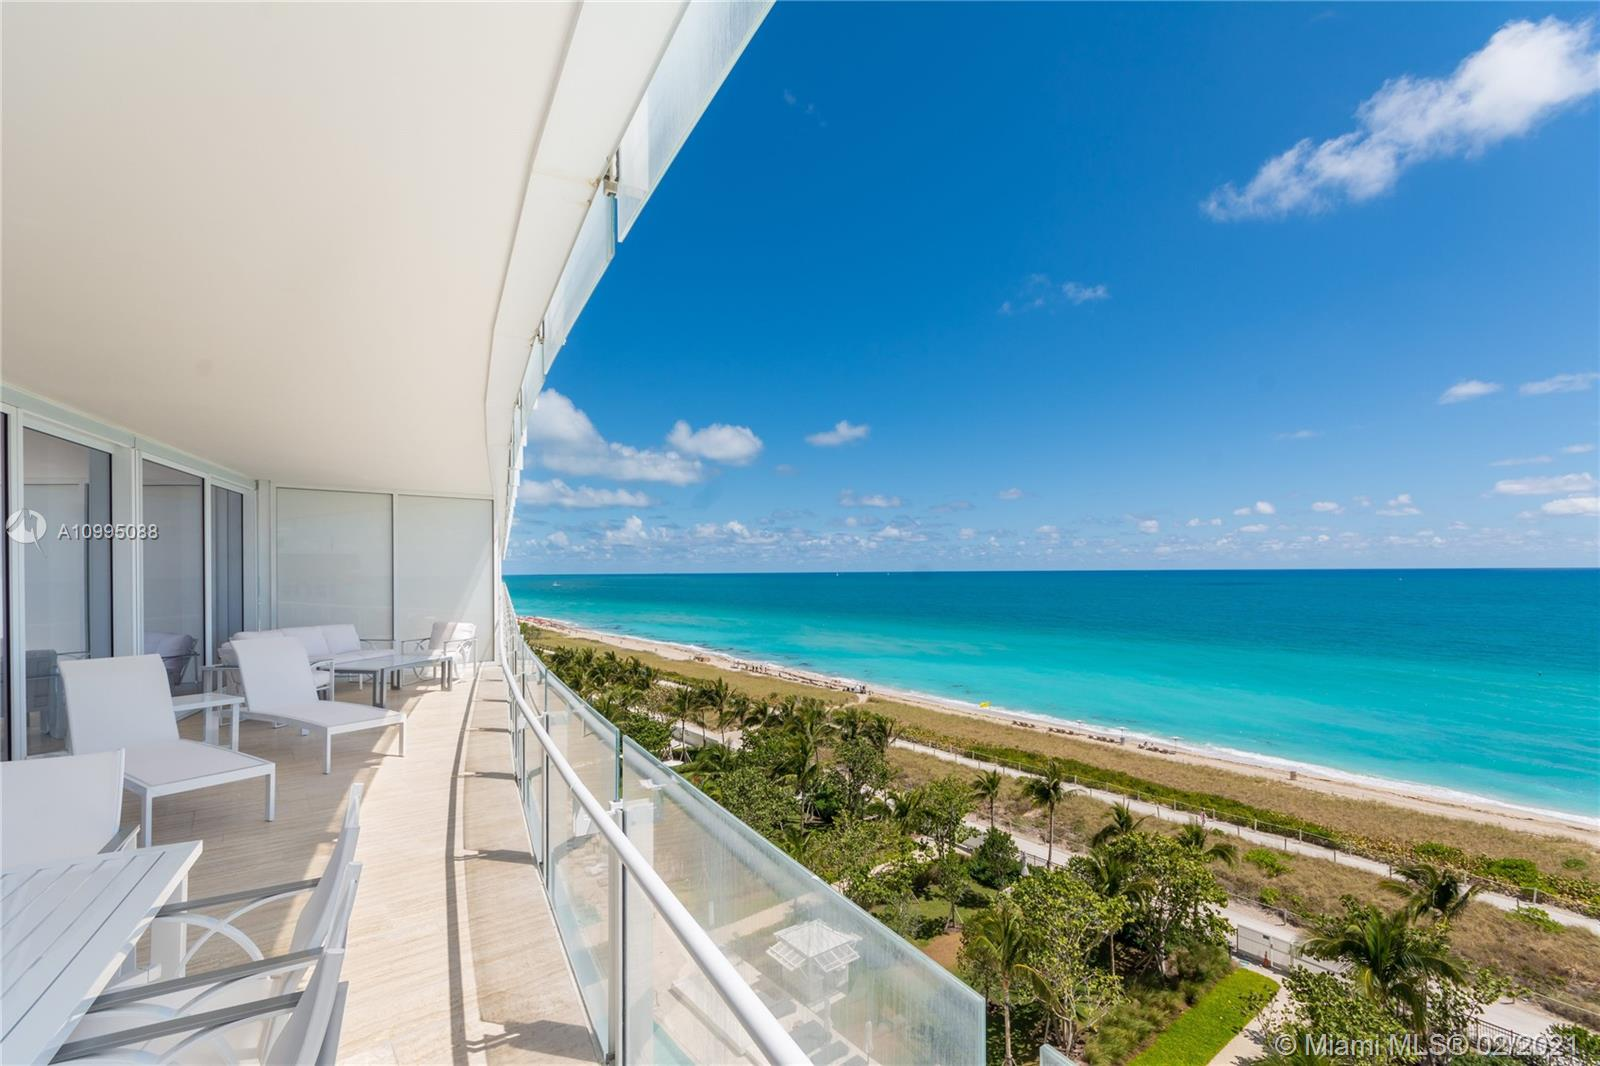 9001 Collins Ave, Unit #S705 Luxury Real Estate